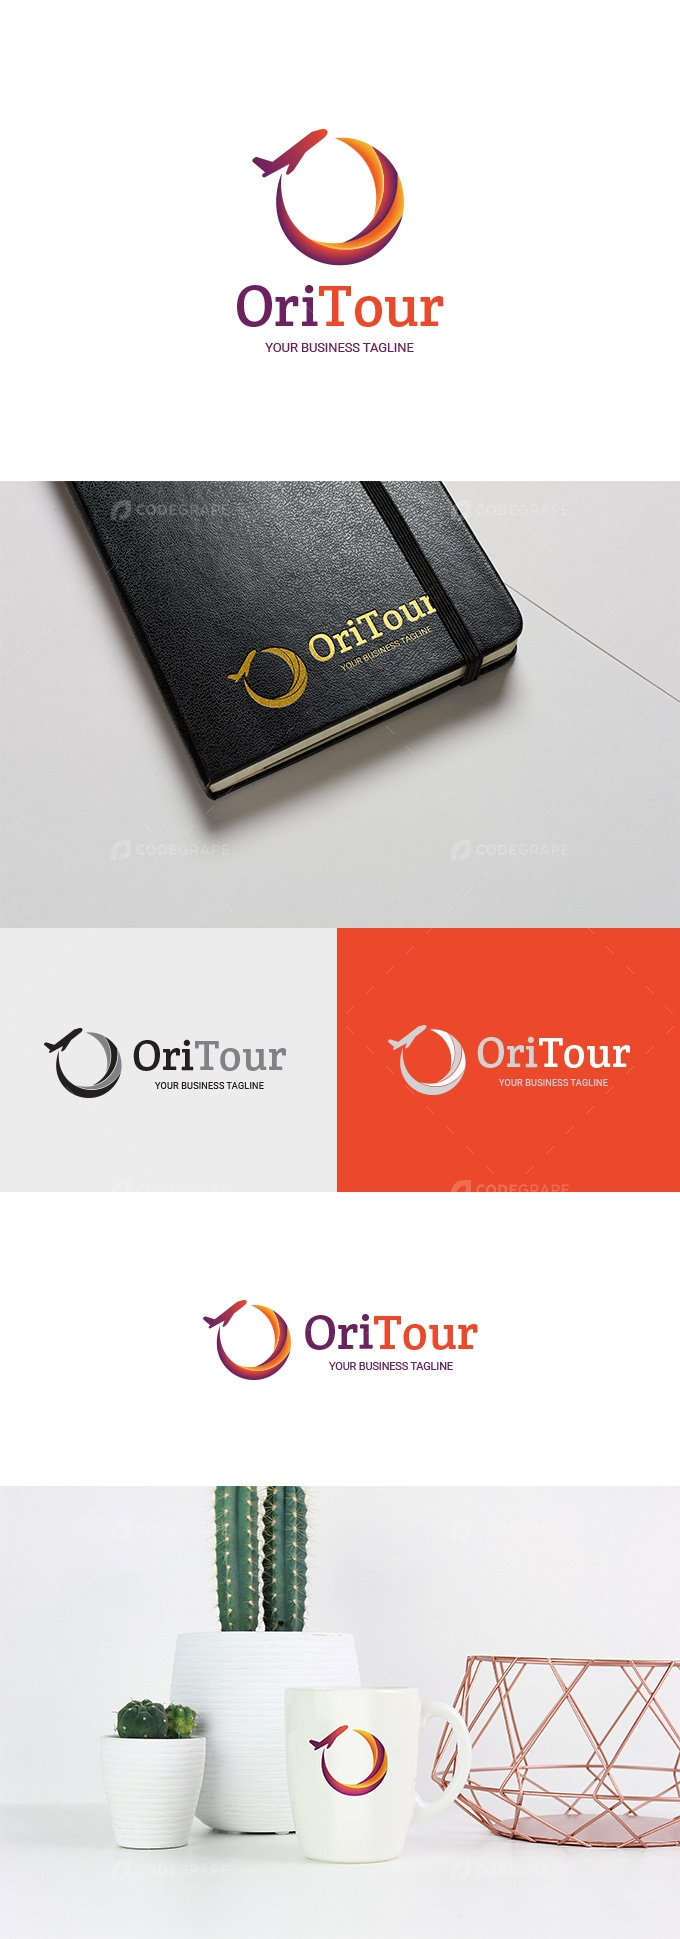 OriTour - Travel Agency or Company Logo